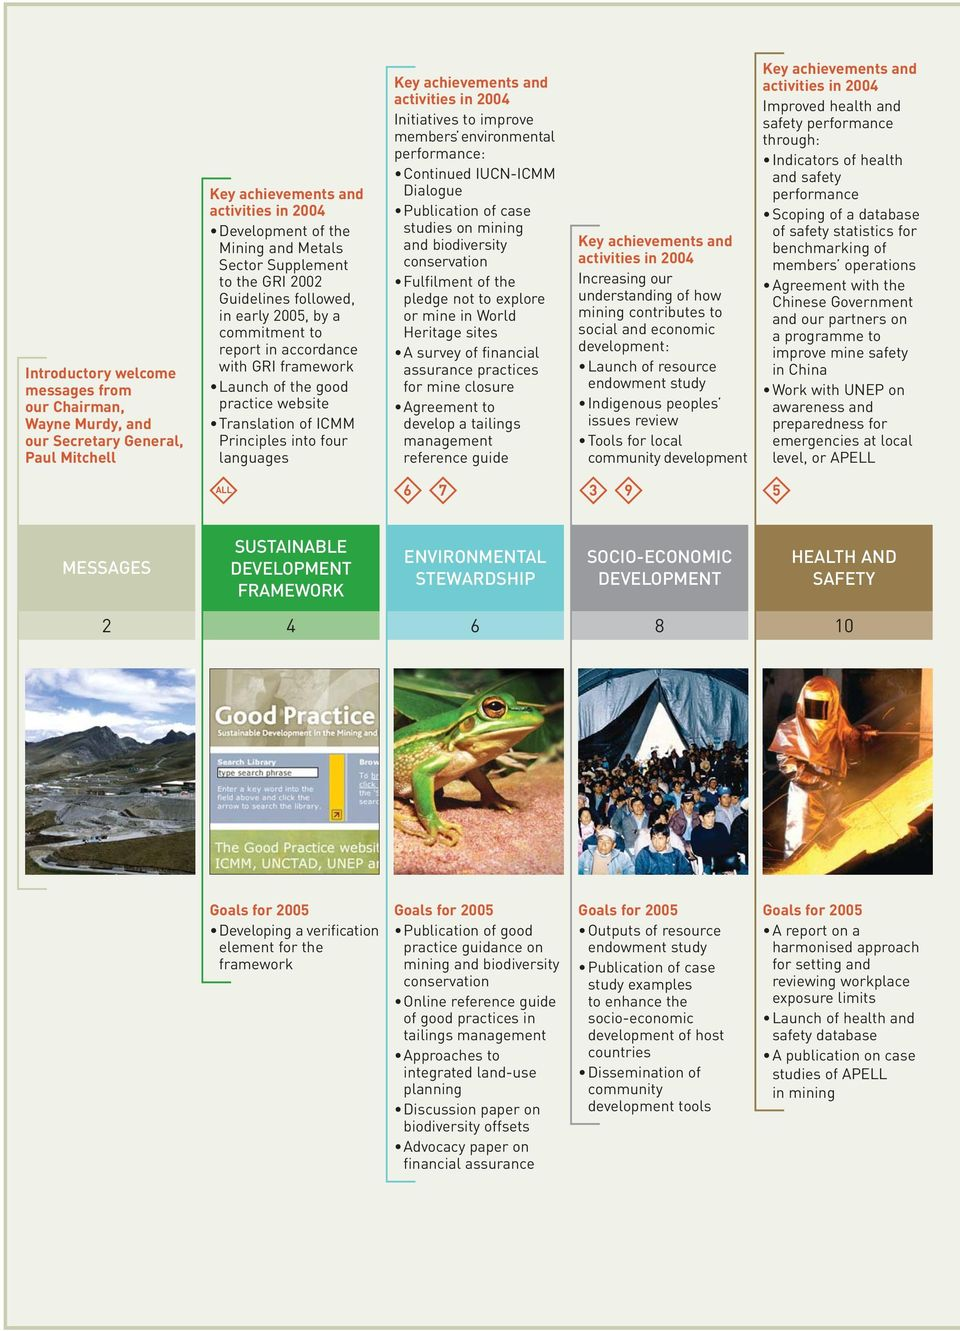 Key achievements and activities in 2004 Initiatives to improve members environmental performance: Continued IUCN-ICMM Dialogue Publication of case studies on mining and biodiversity conservation